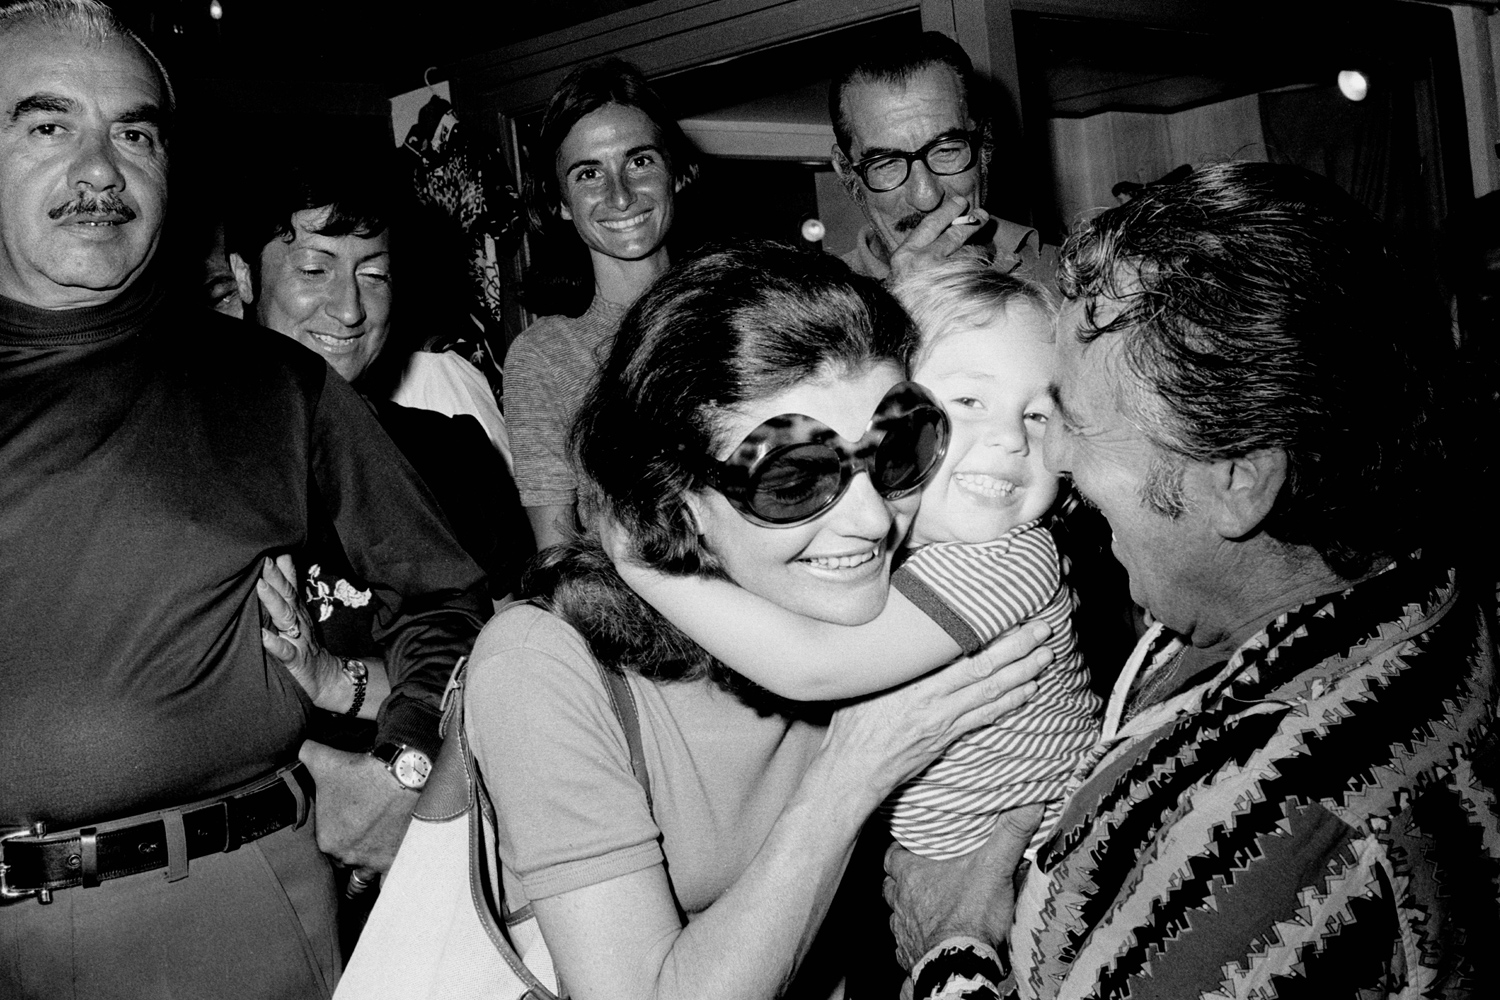 Former First Lady Jacqueline Kennedy Onassis gets a hug from a young fan in Capri, Italy in 1973.